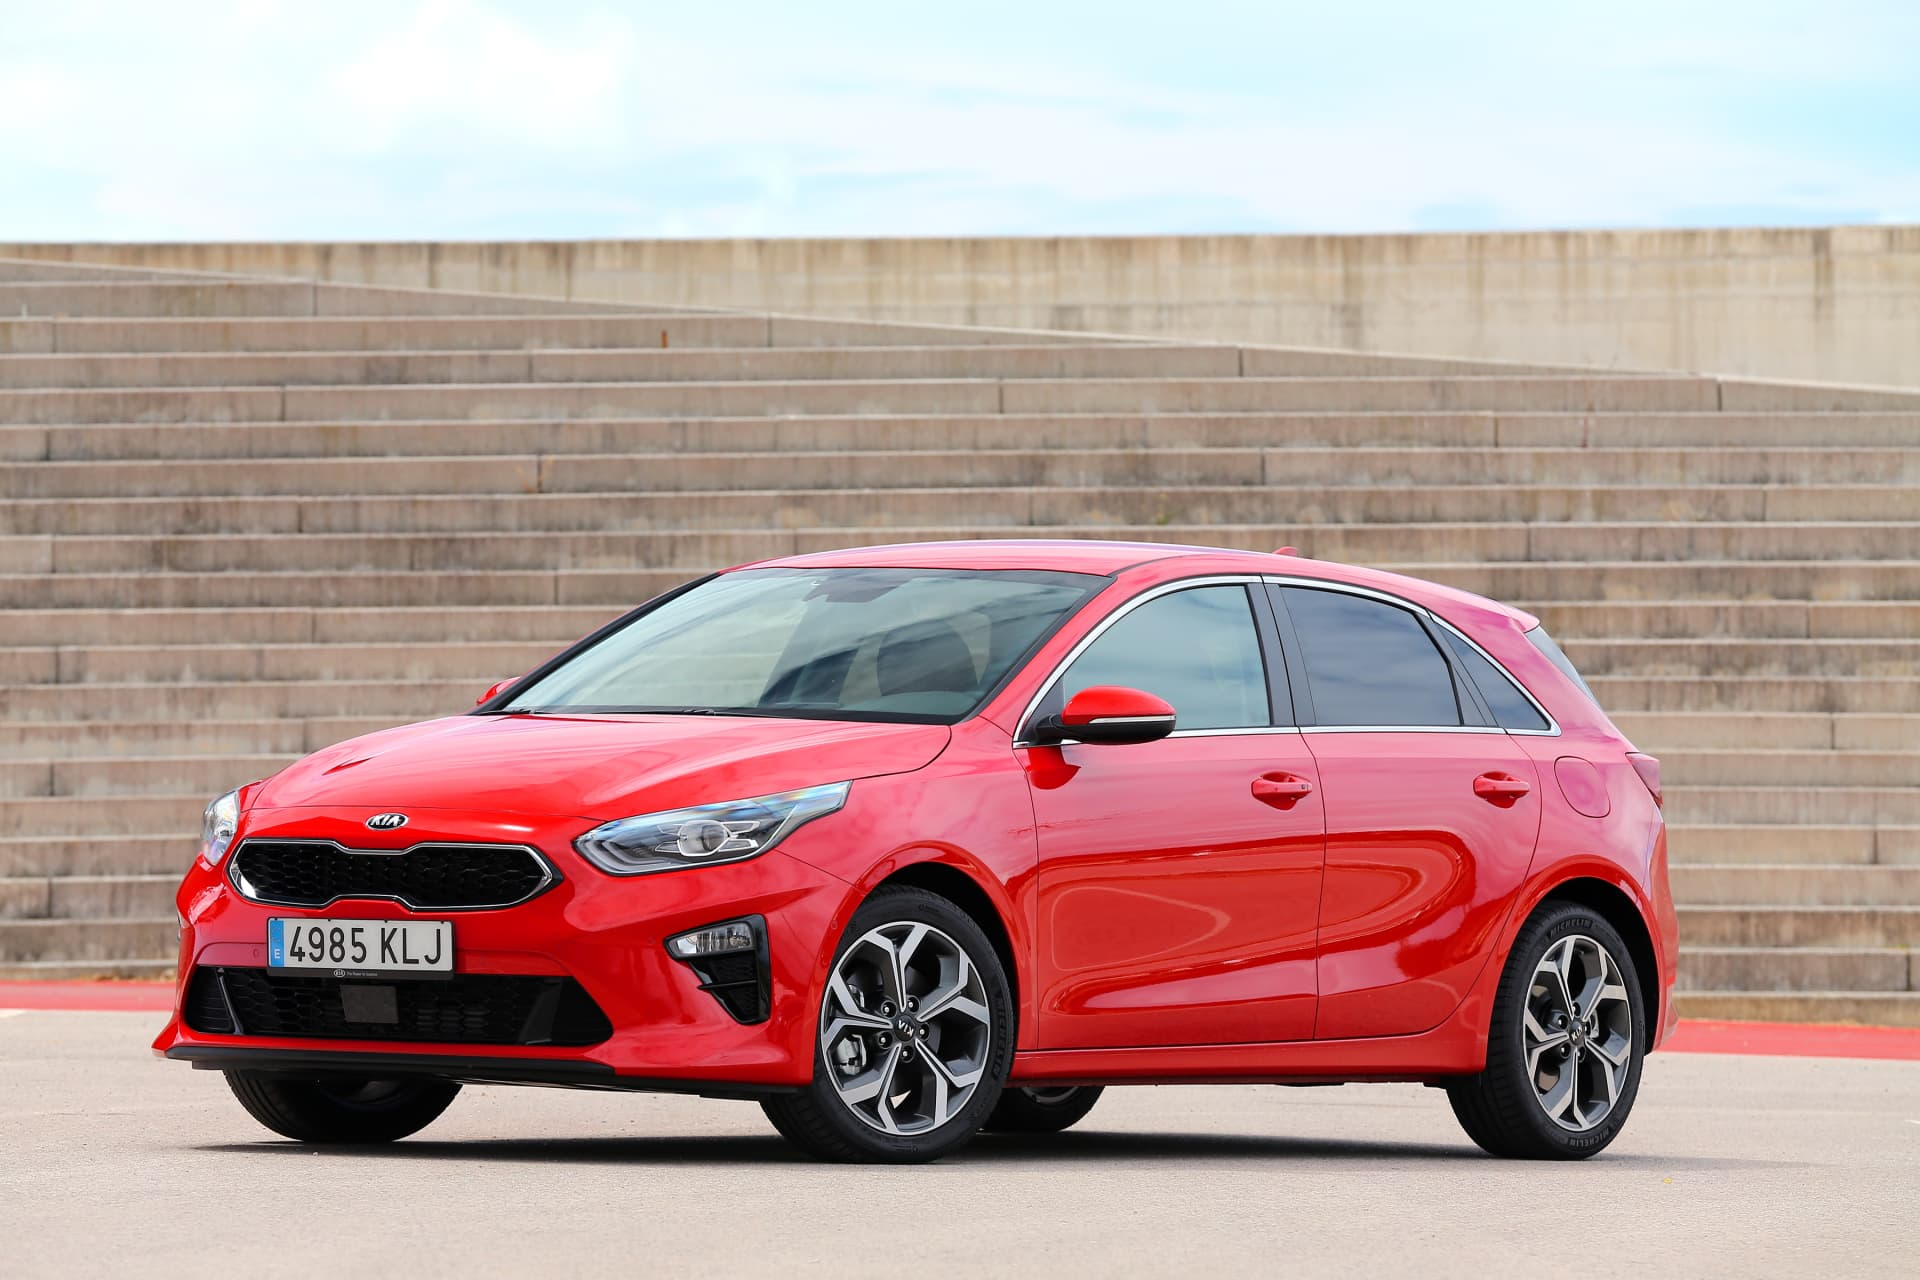 Kia Ceed 1 4 T Gdi 7 Dct Transmission 140hp Track Red 19